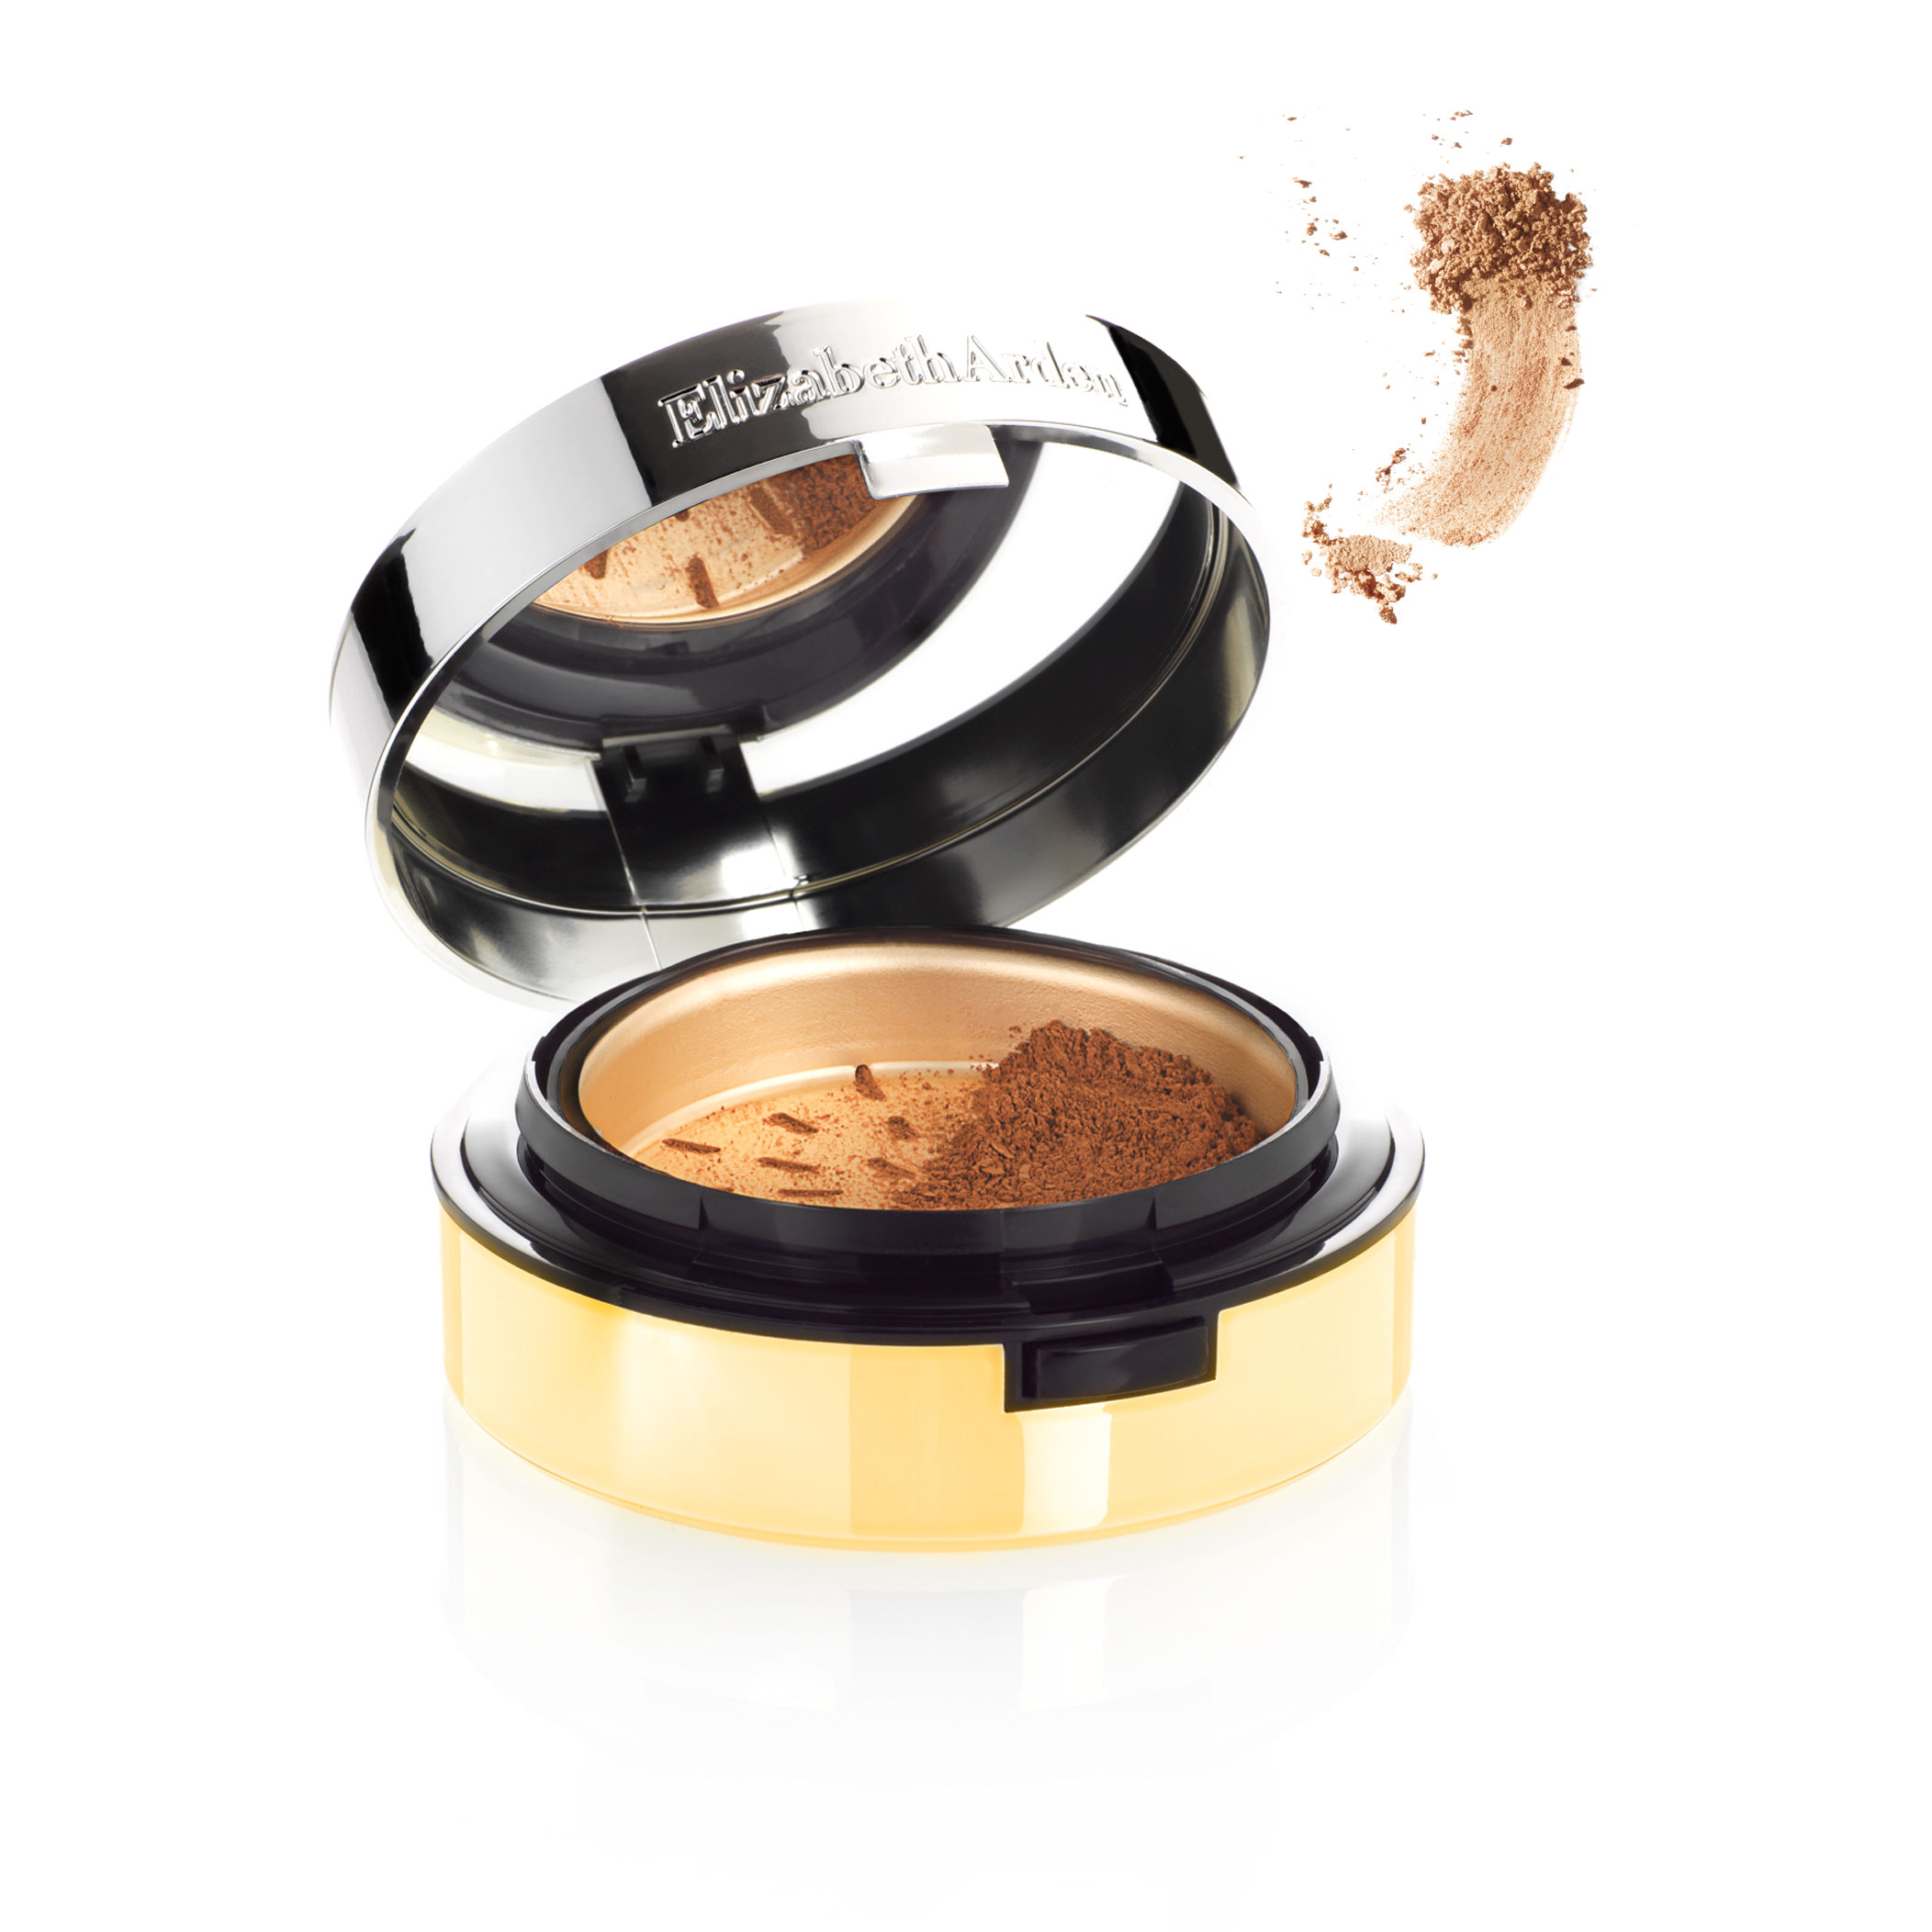 Elizabeth Arden Pure Finish Mineral Powder Foundation, $40.00